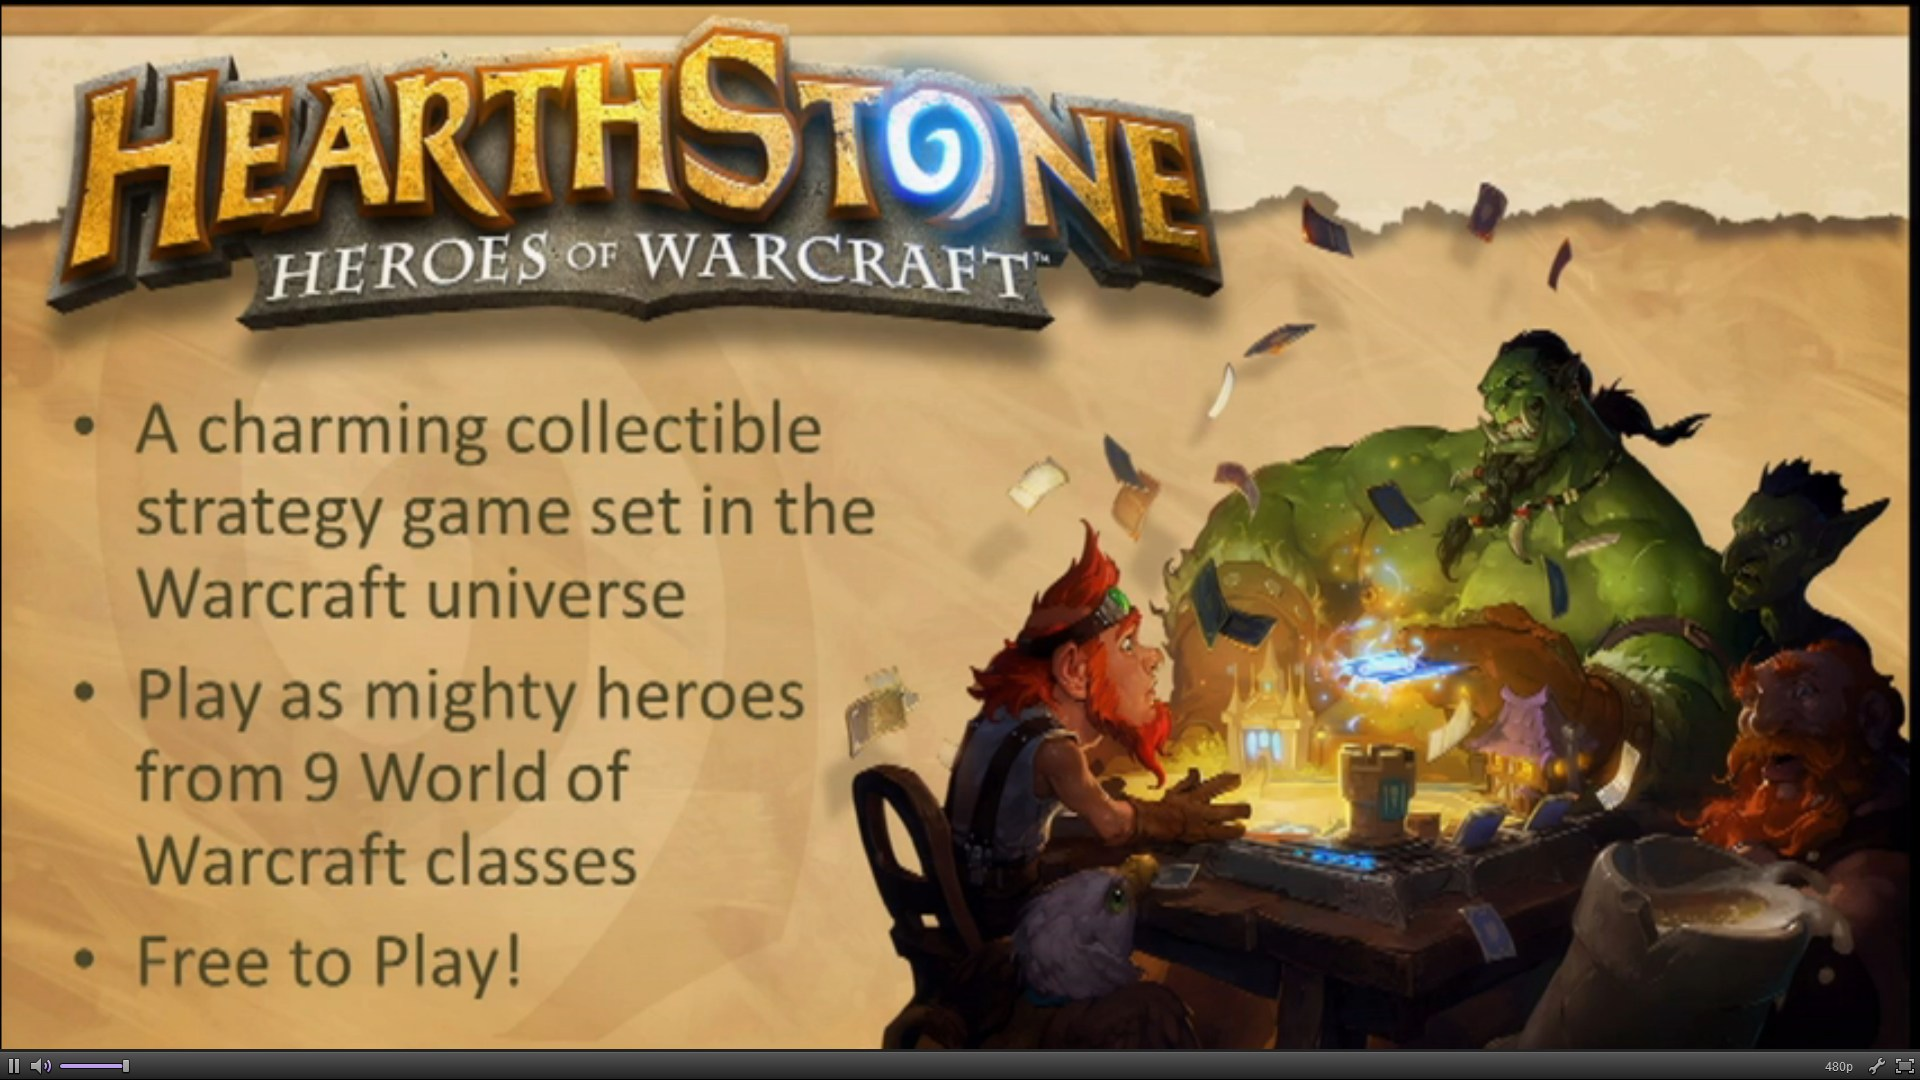 Hearthstone Heroes of Warcraft announcement